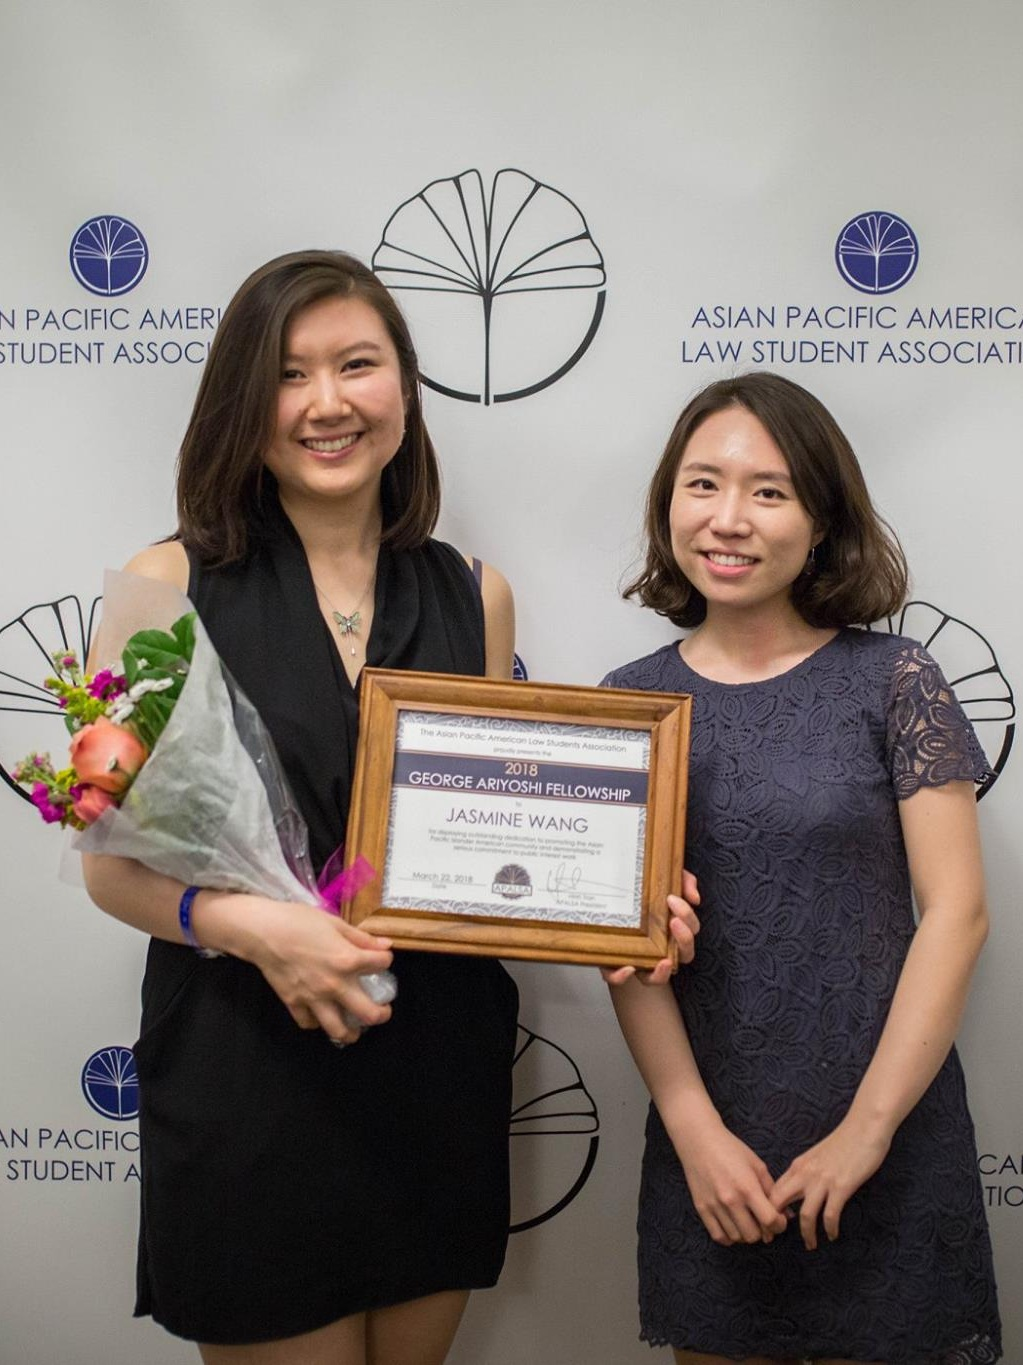 Jasmine Wang, the 2018 recipient of the George Ariyoshi 1L Public Interest Fellowship, pictured with Ginny Lee, the 2017 recipient.